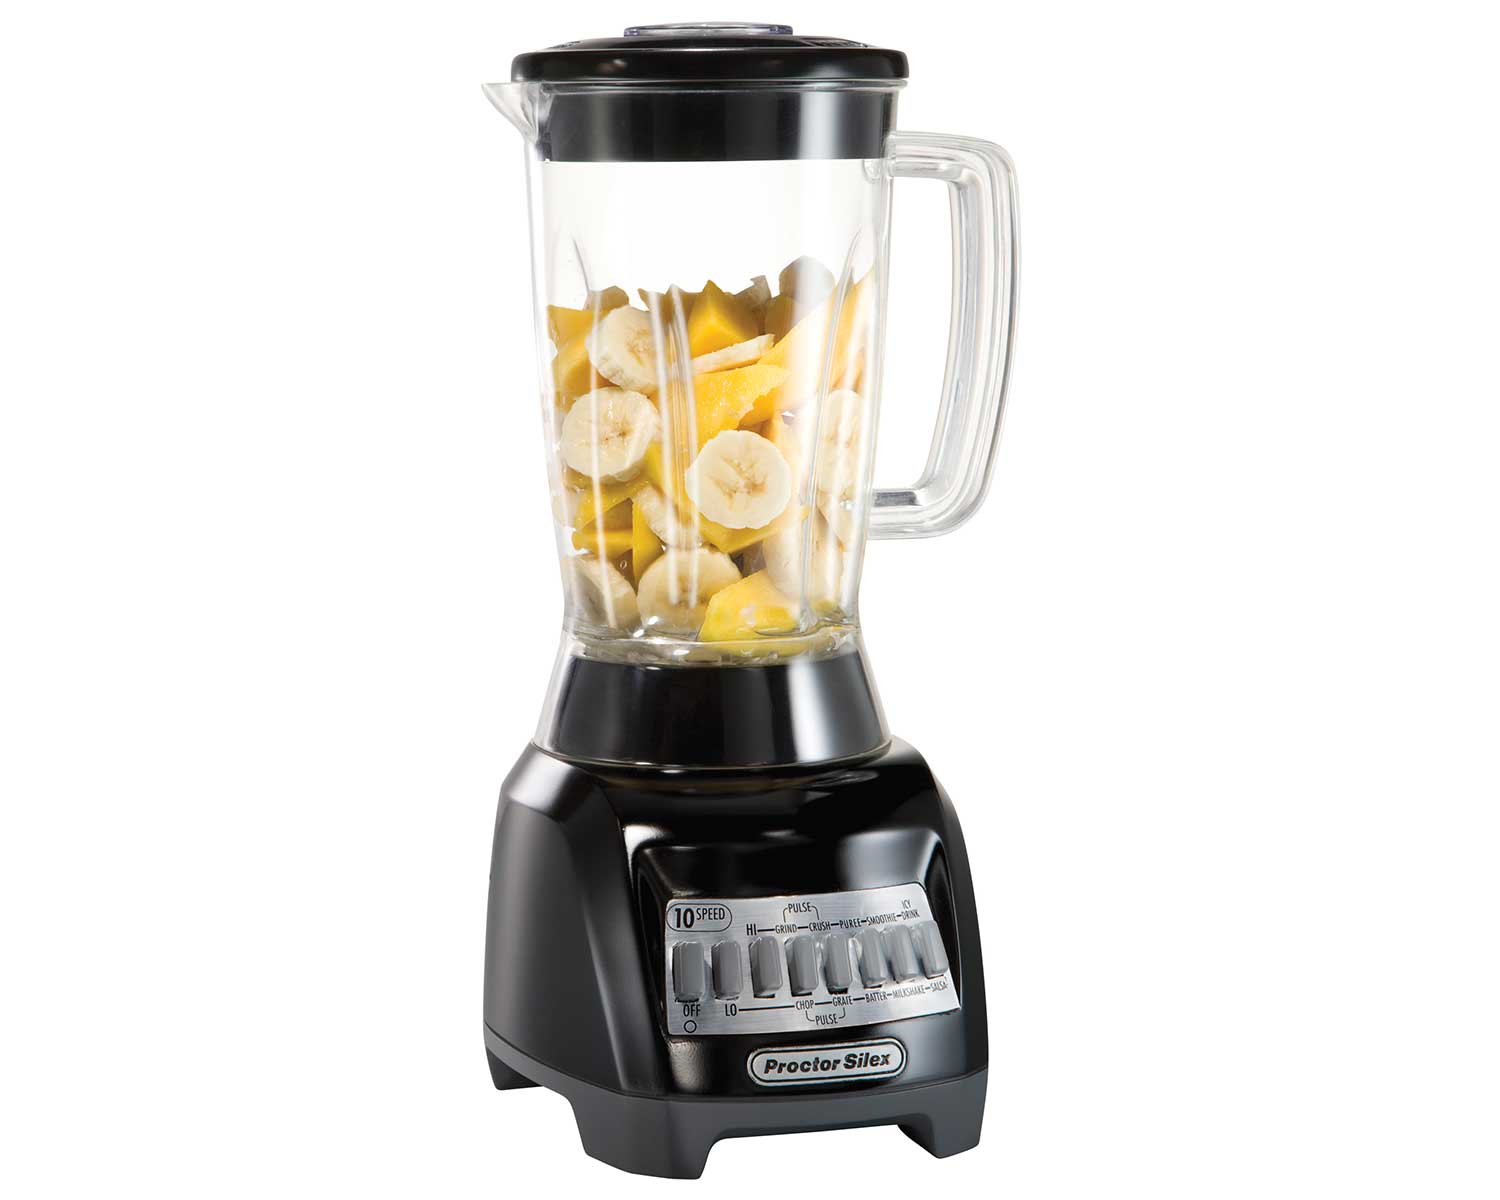 10 Speed Blender (black)